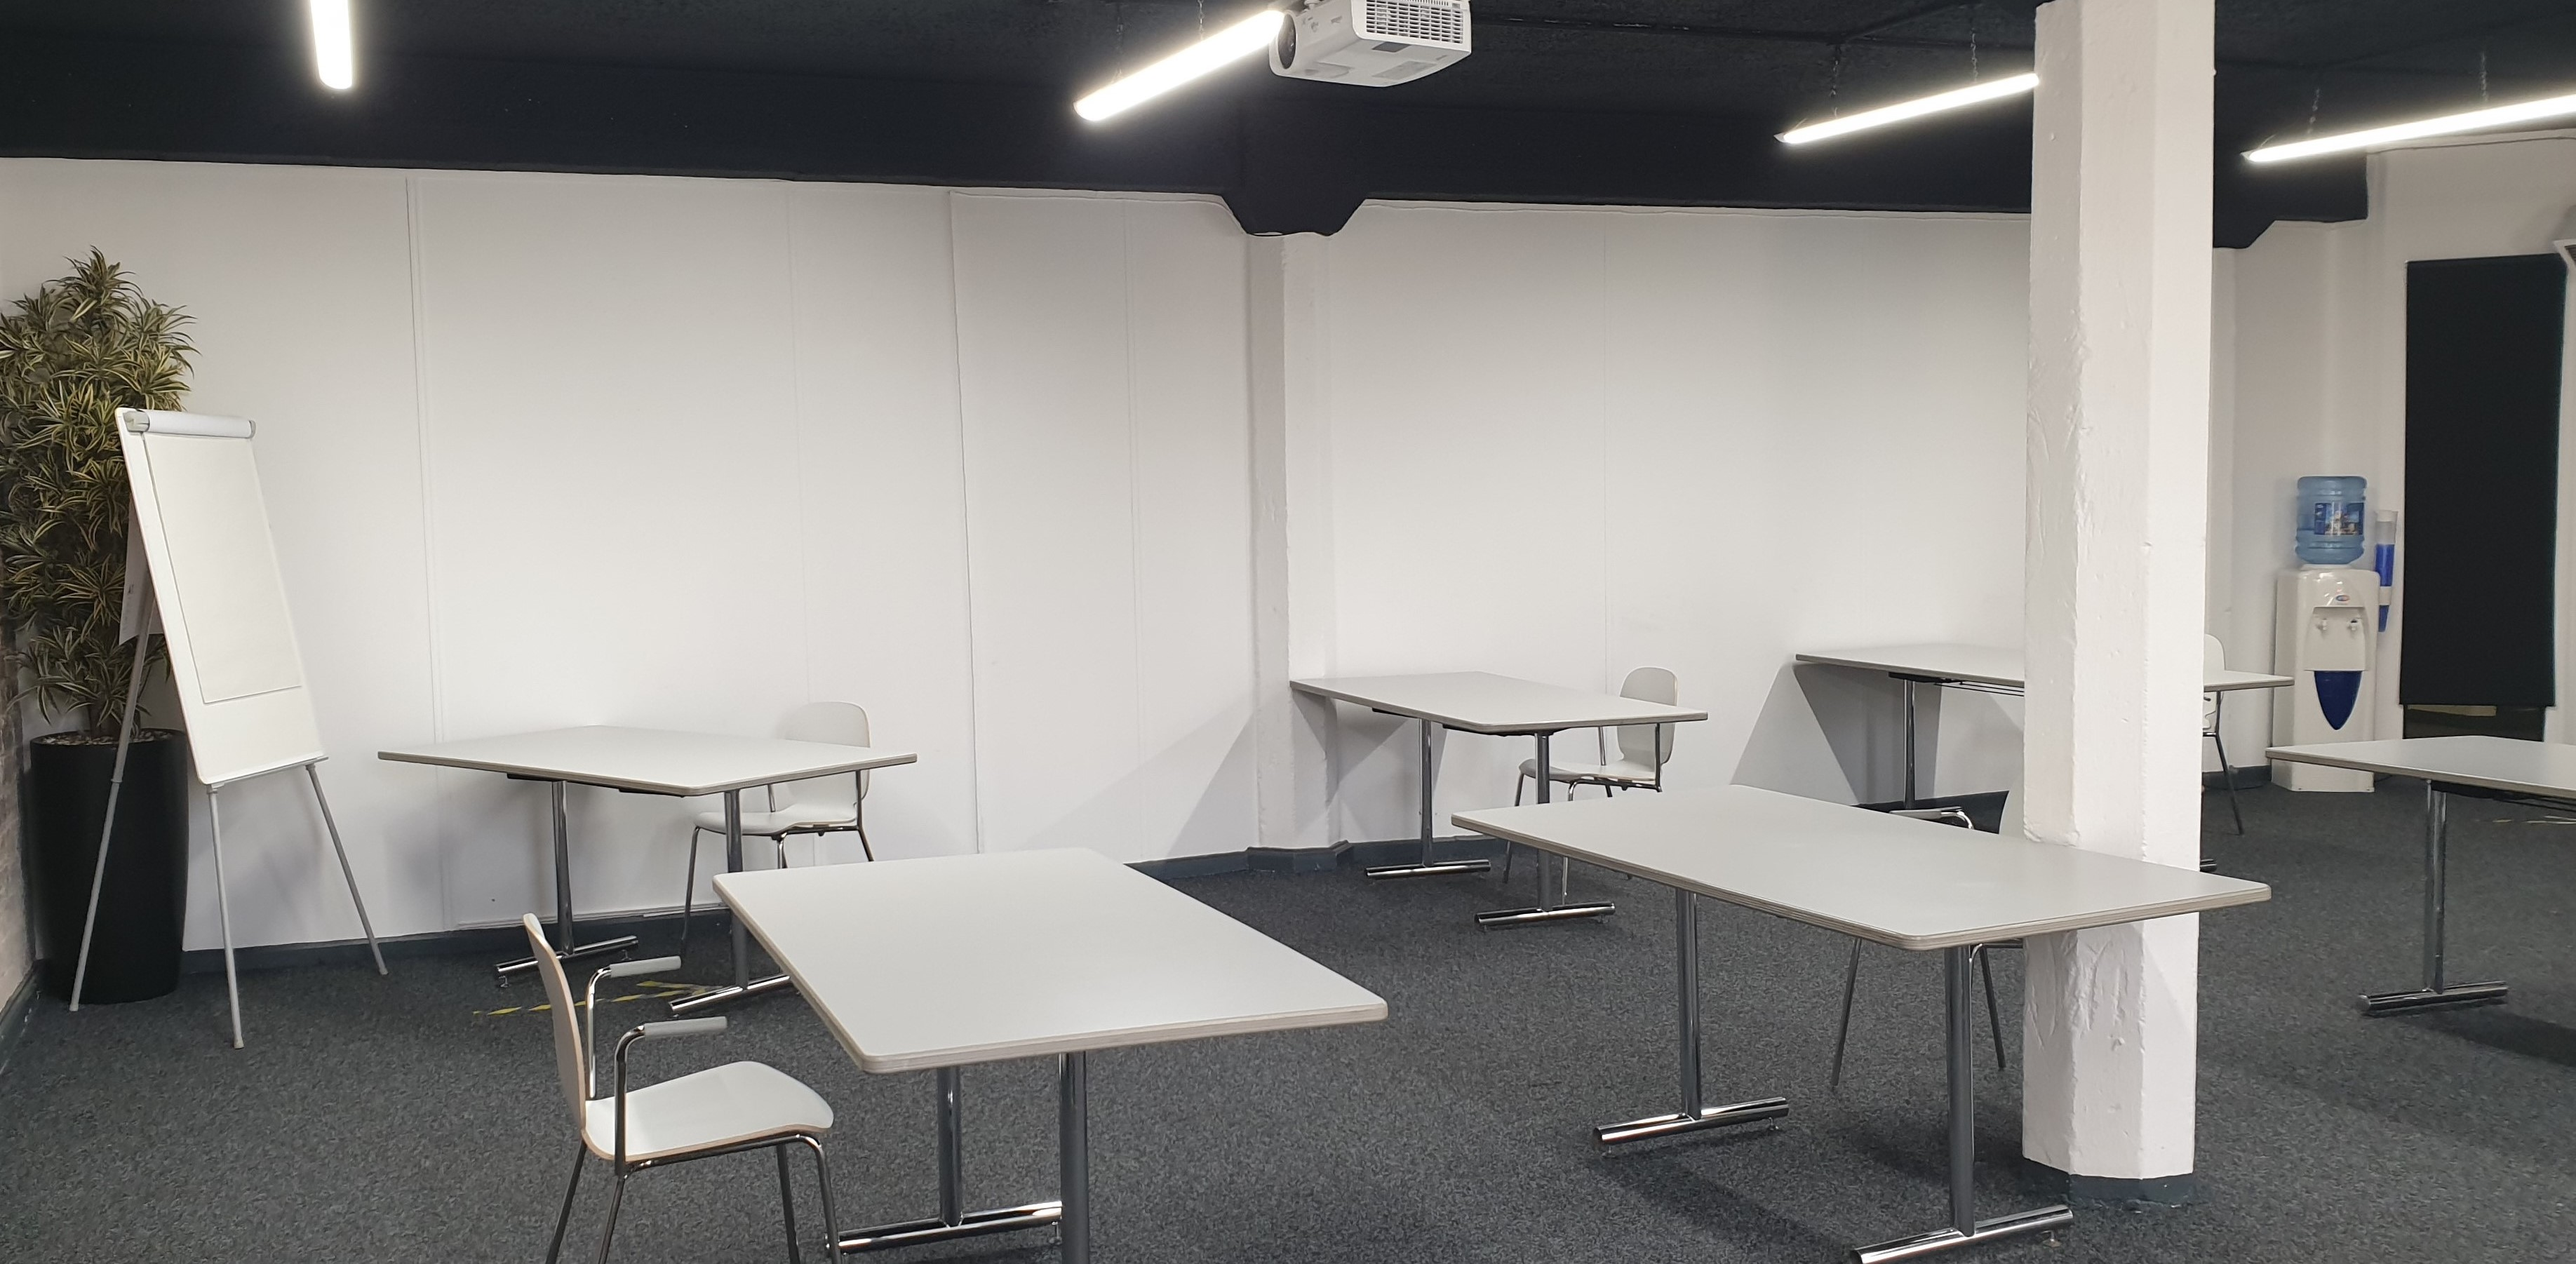 Training Room - a side view